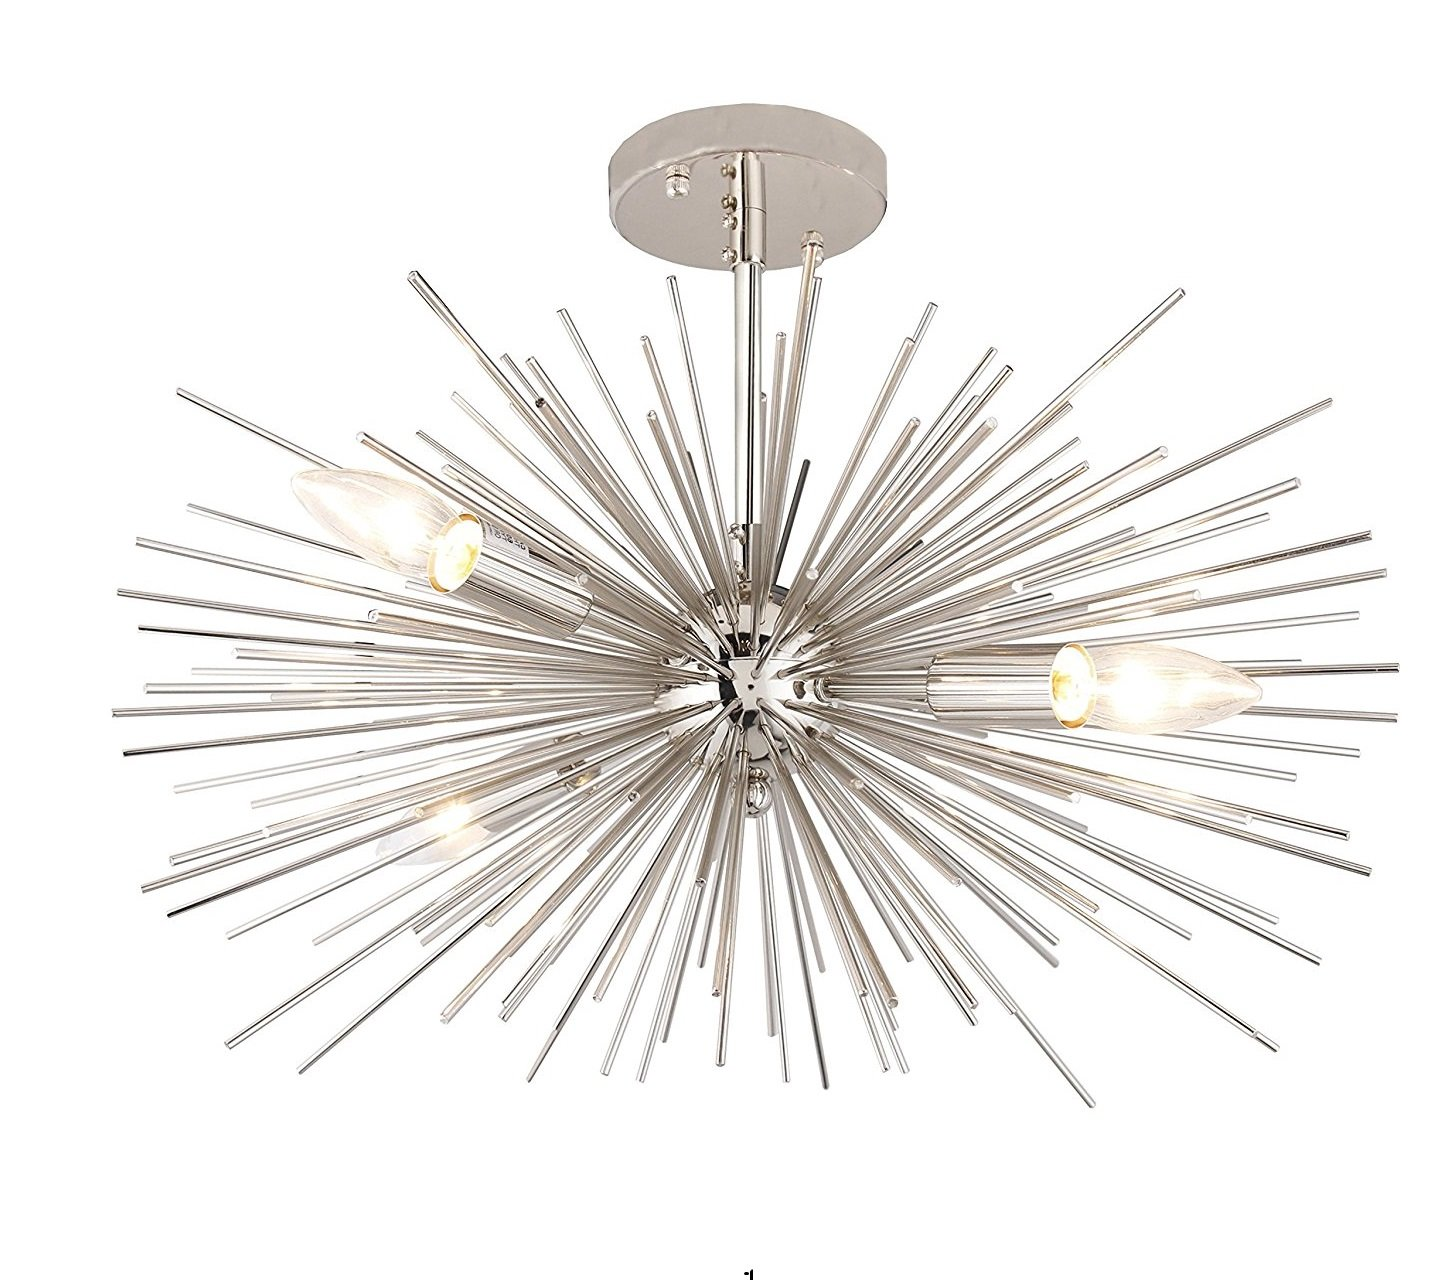 20 x 14 inch starburst chandelier astra sputnik light satellite ceiling light fixture flush mount light nickel chrome color